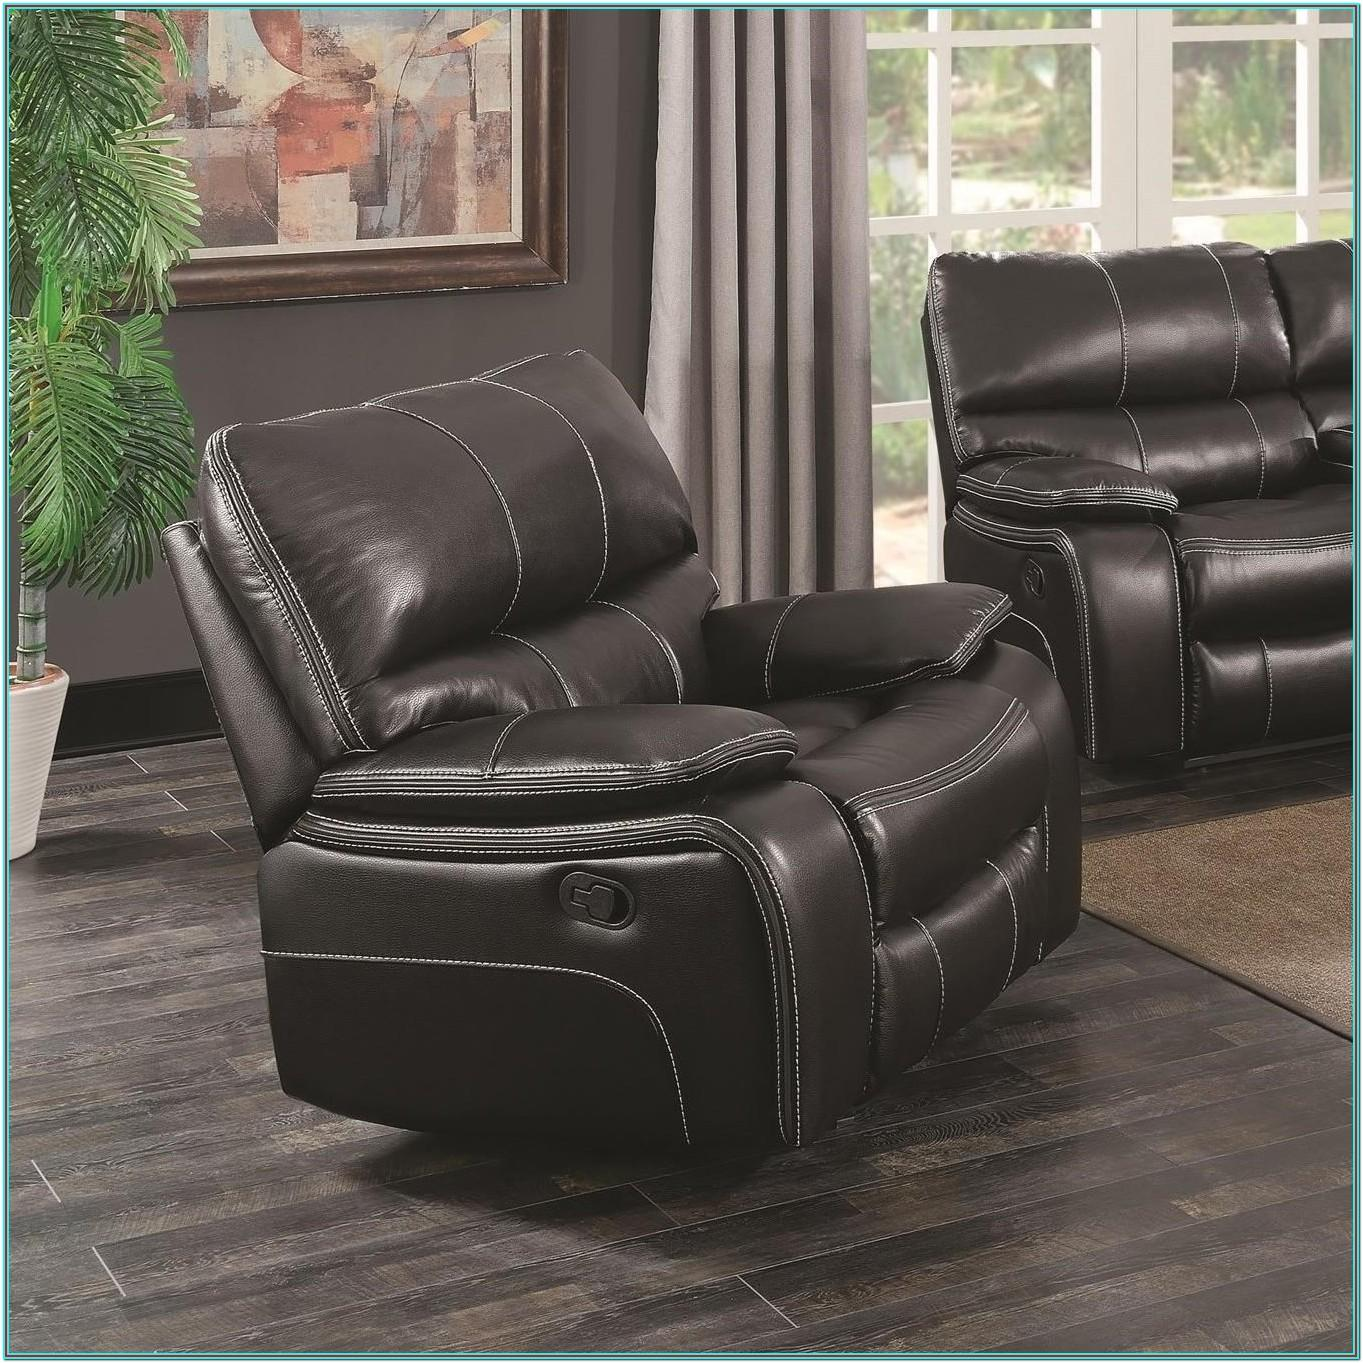 Chairs With Lumbar Support For Living Room